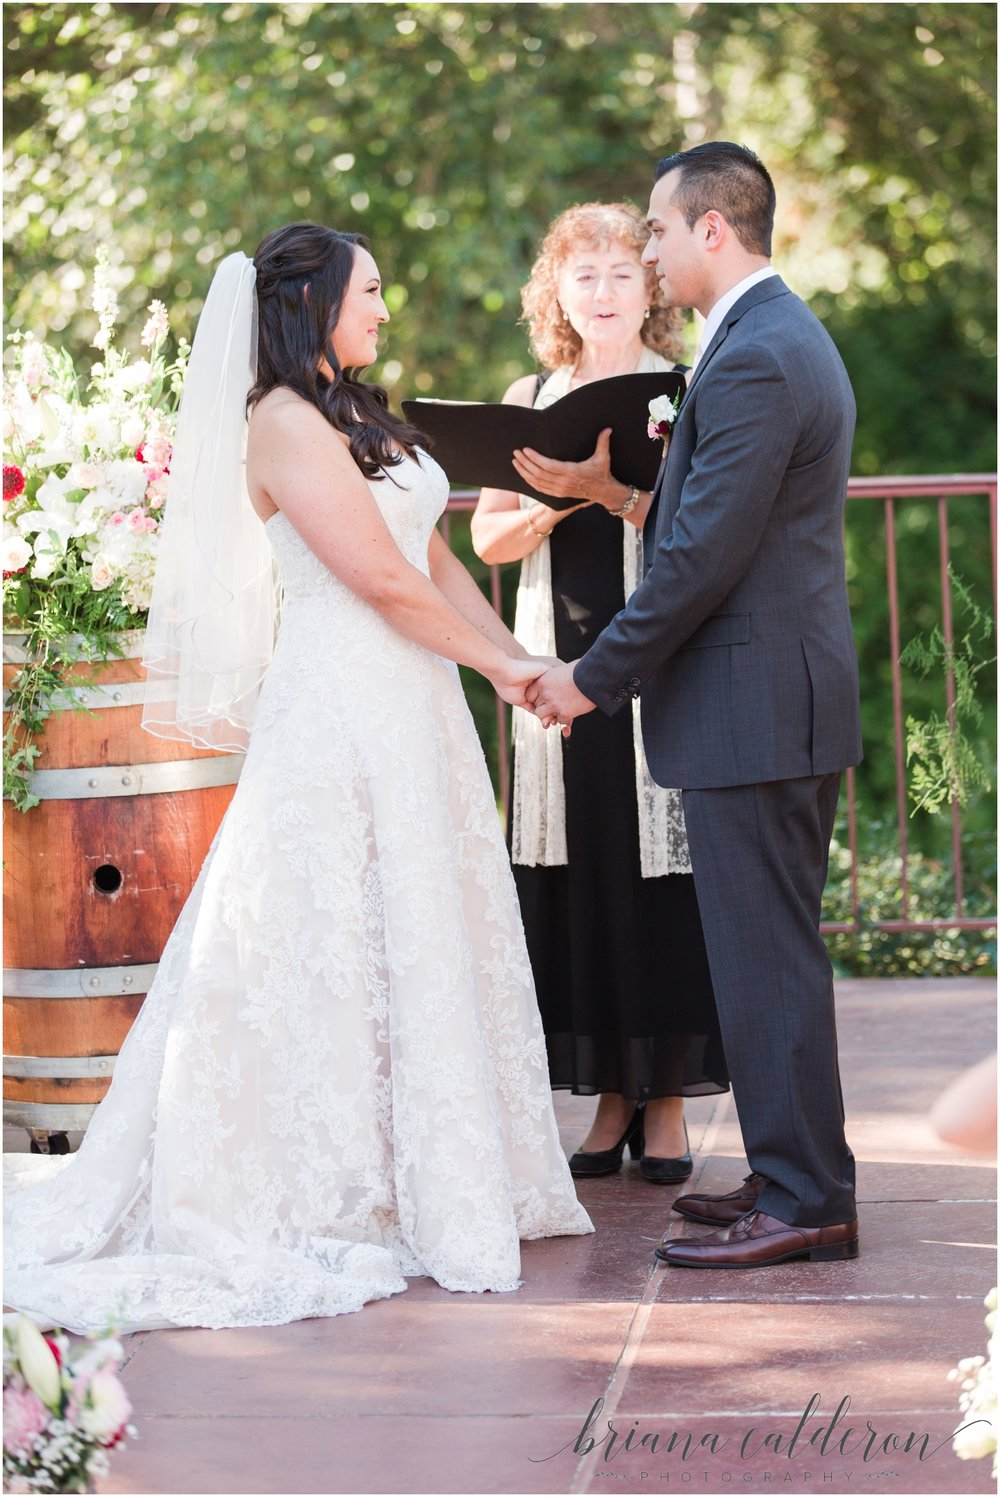 Bargetto Winery Wedding photos by Briana Calderon Photography_0930.jpg